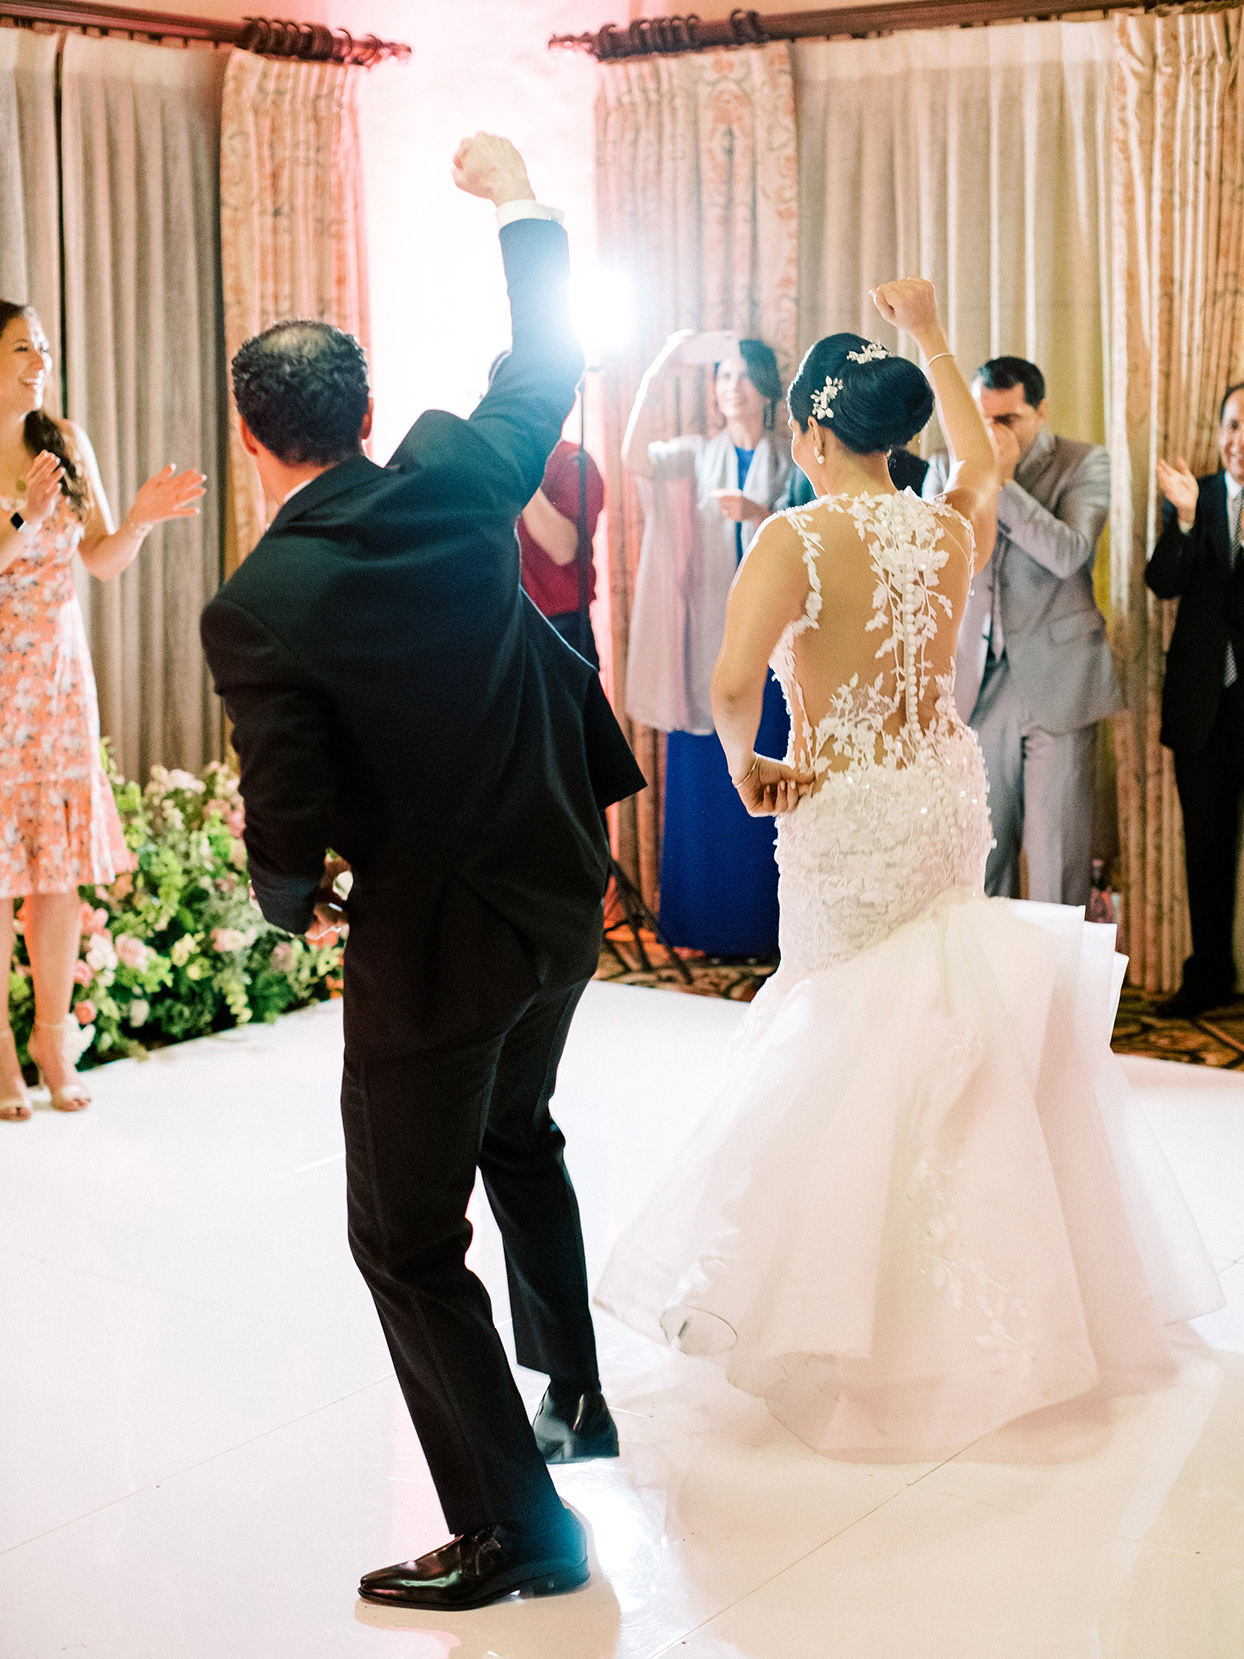 The Fun First Dance